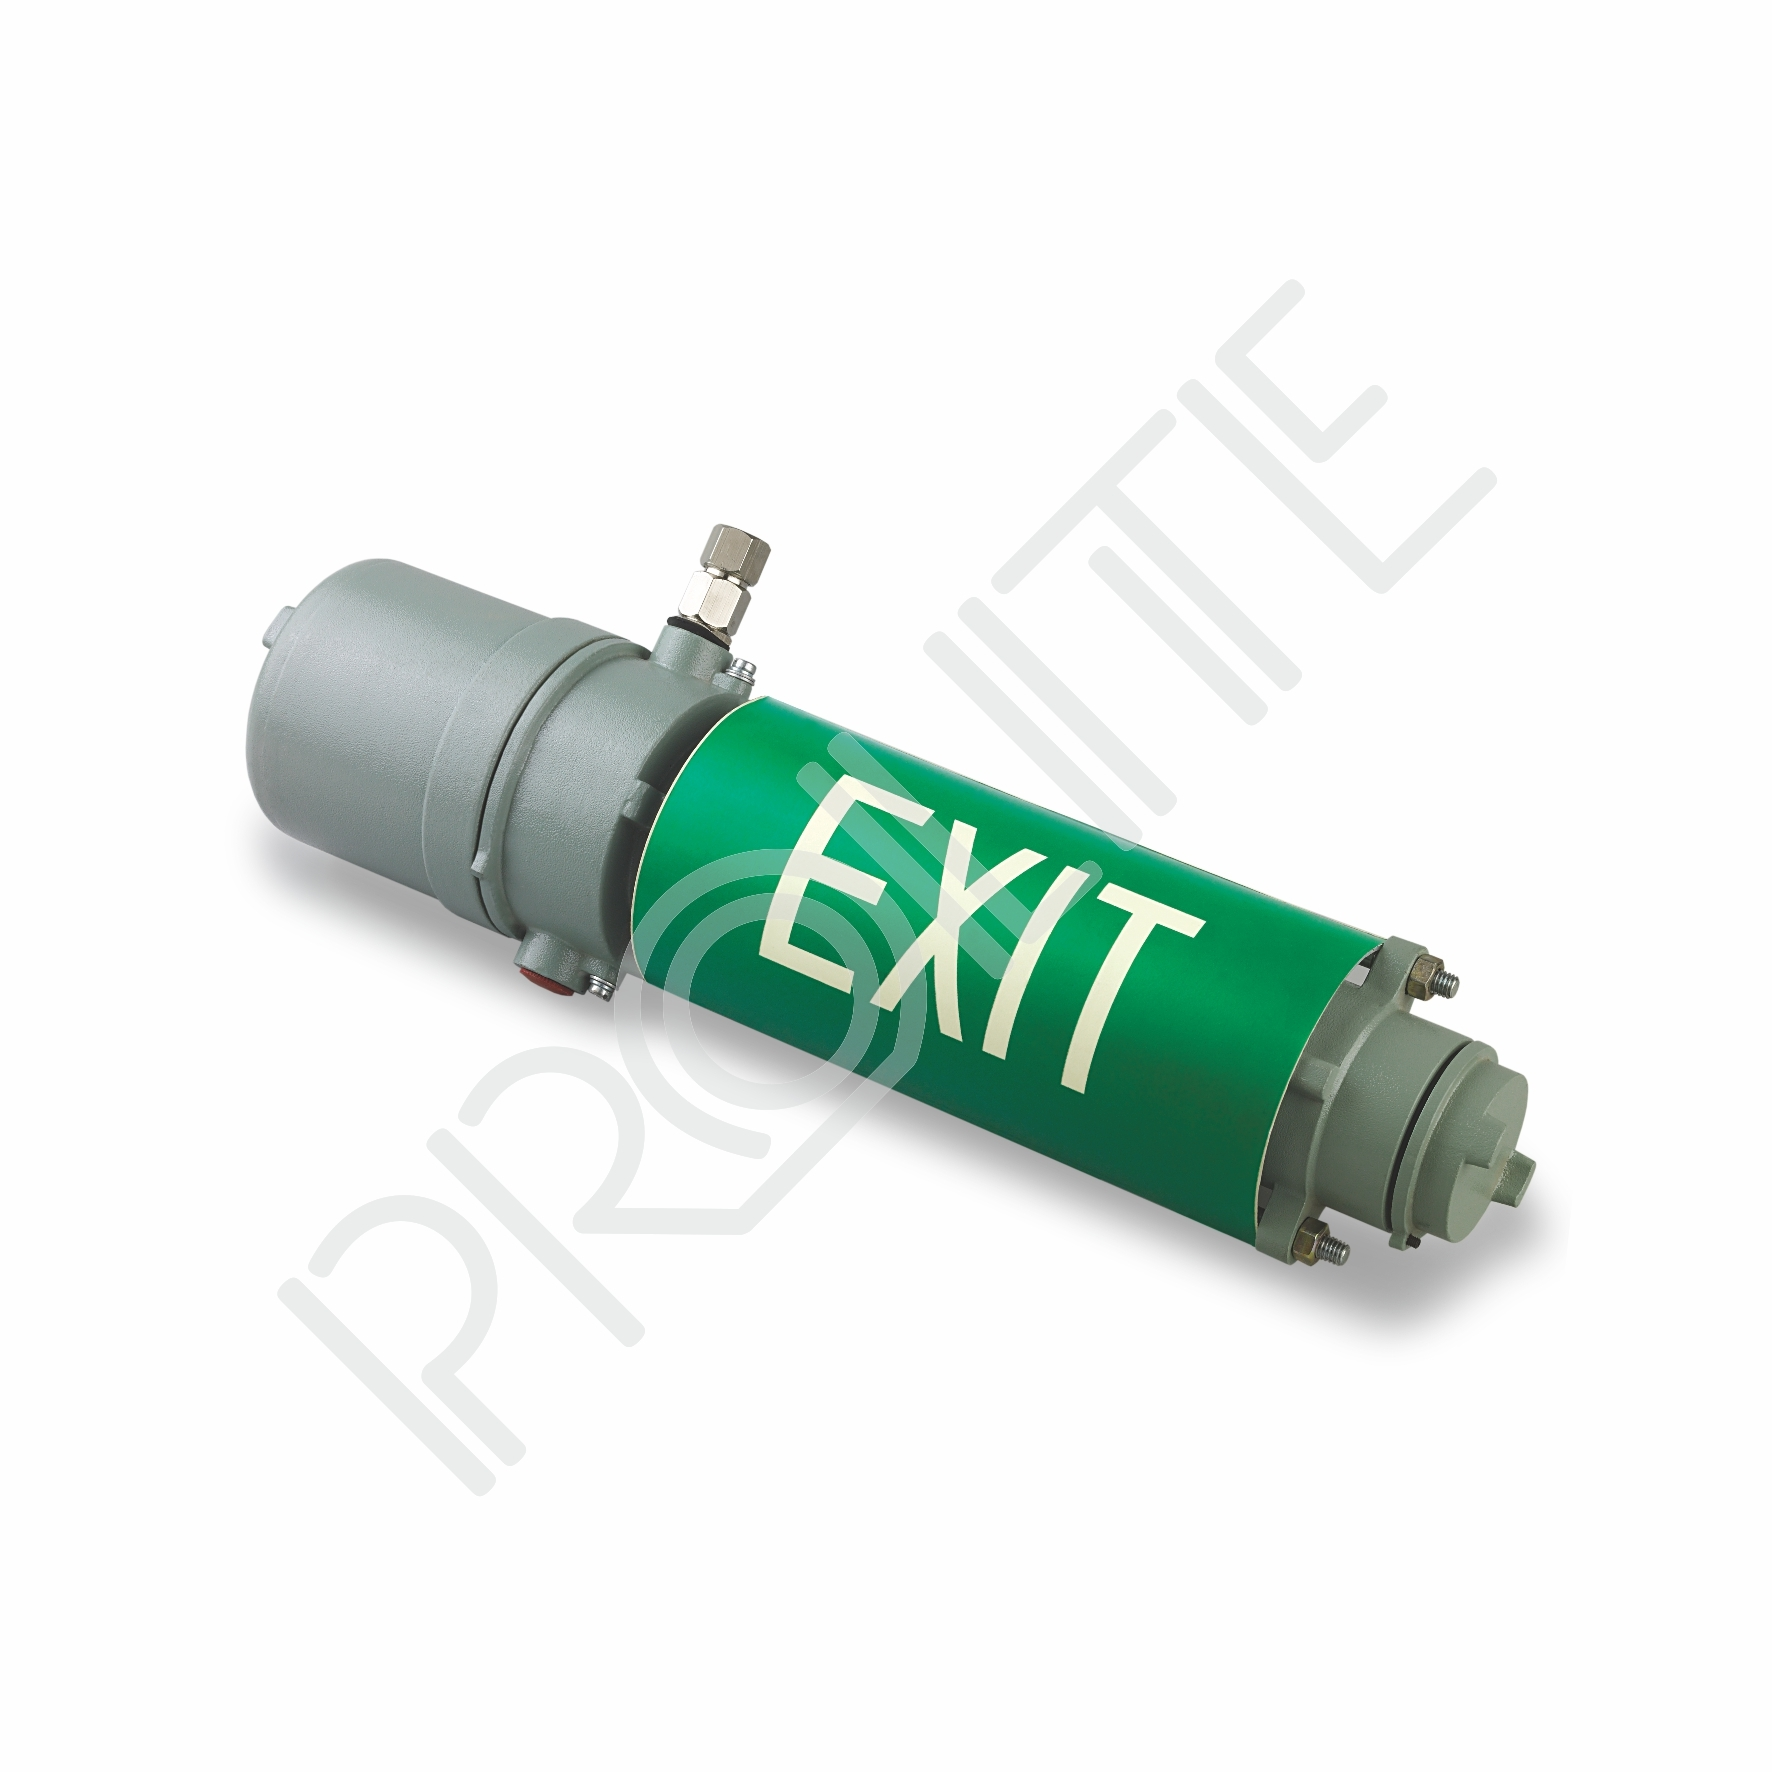 Firefly EXIT Flameproof Emergency Light